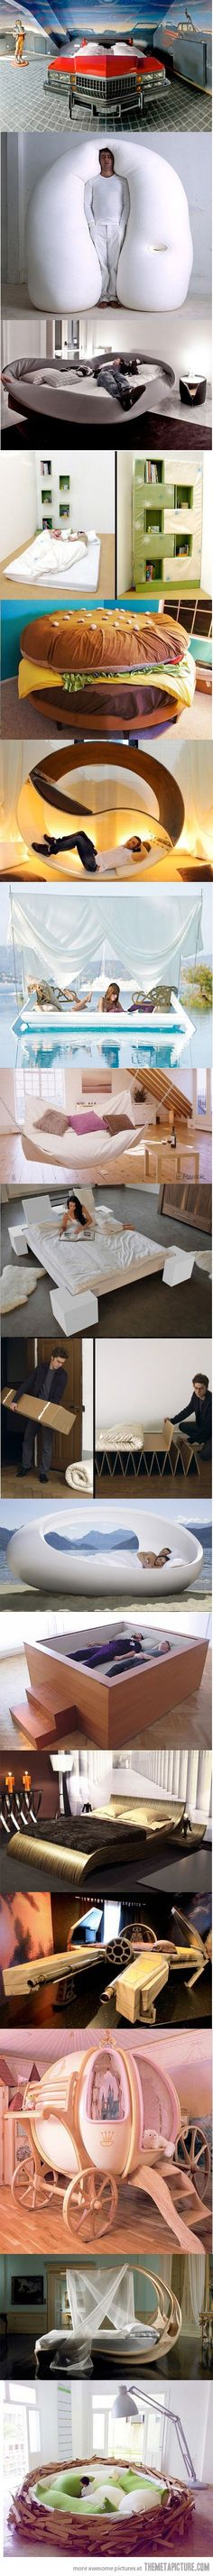 awesome beds! i want most of these